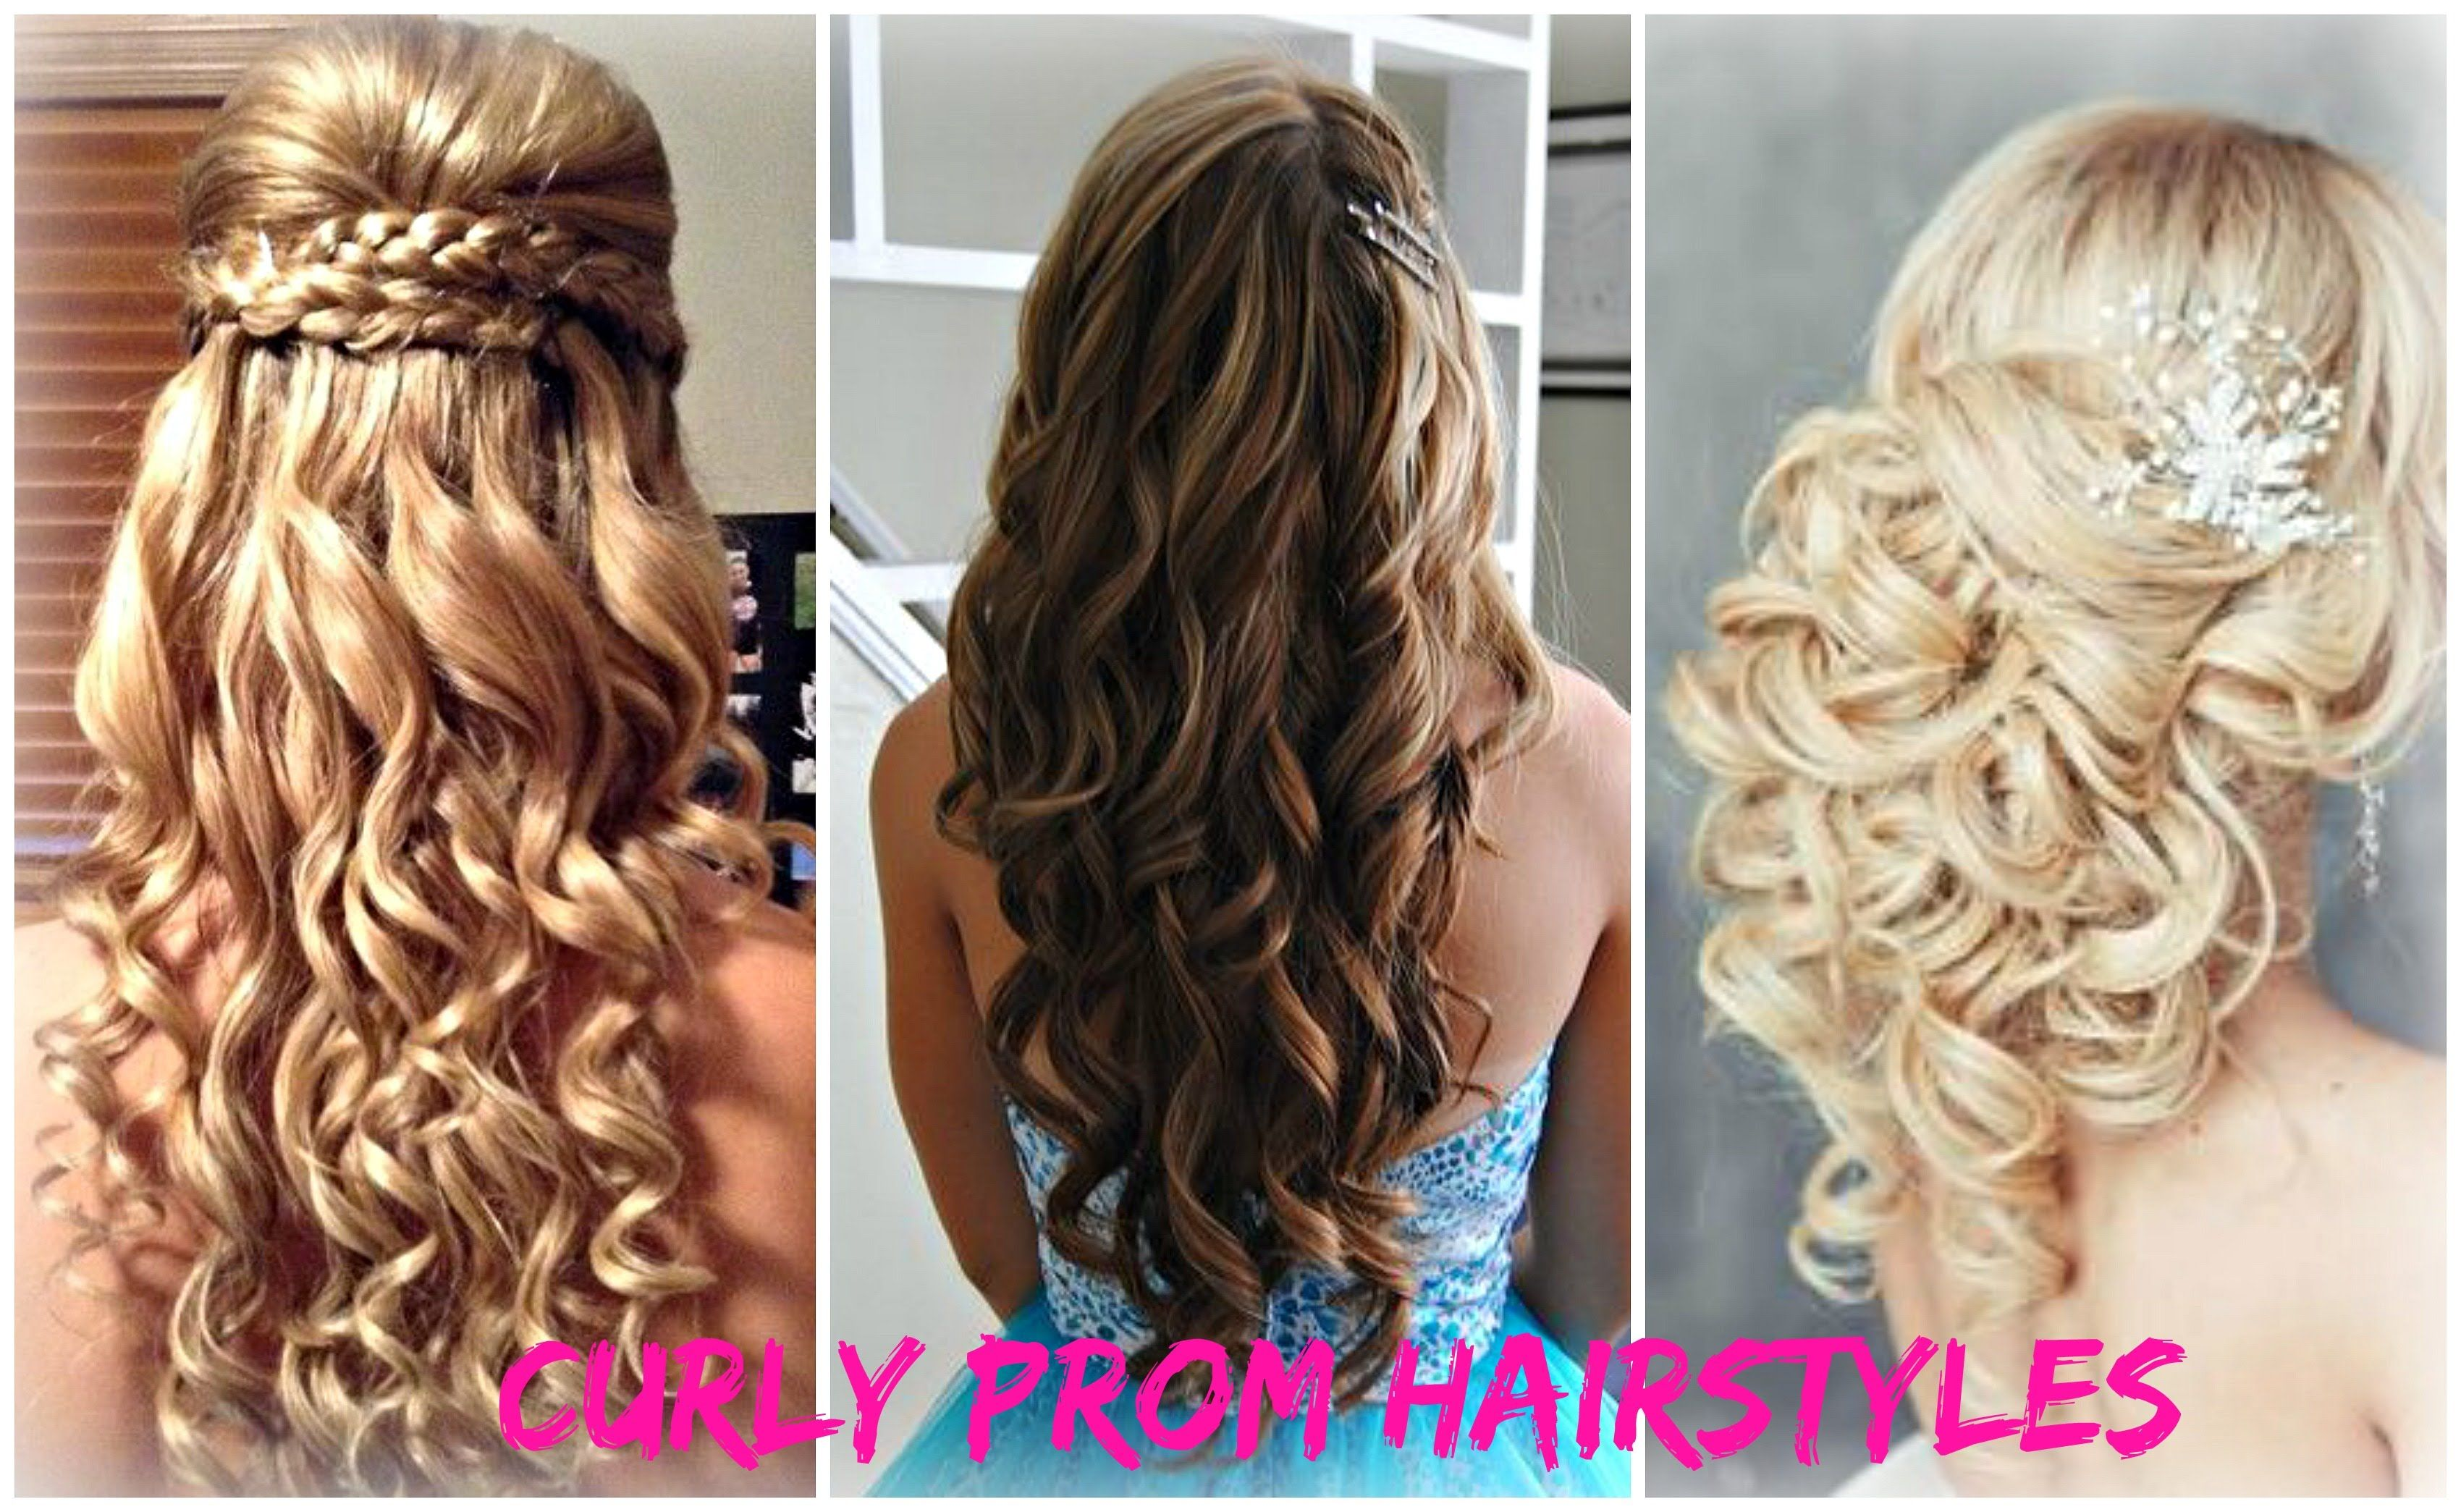 Hairstyles For Prom Curly Prom Hairstyles  Youtube  My Fantasy Hairstyles  Pinterest